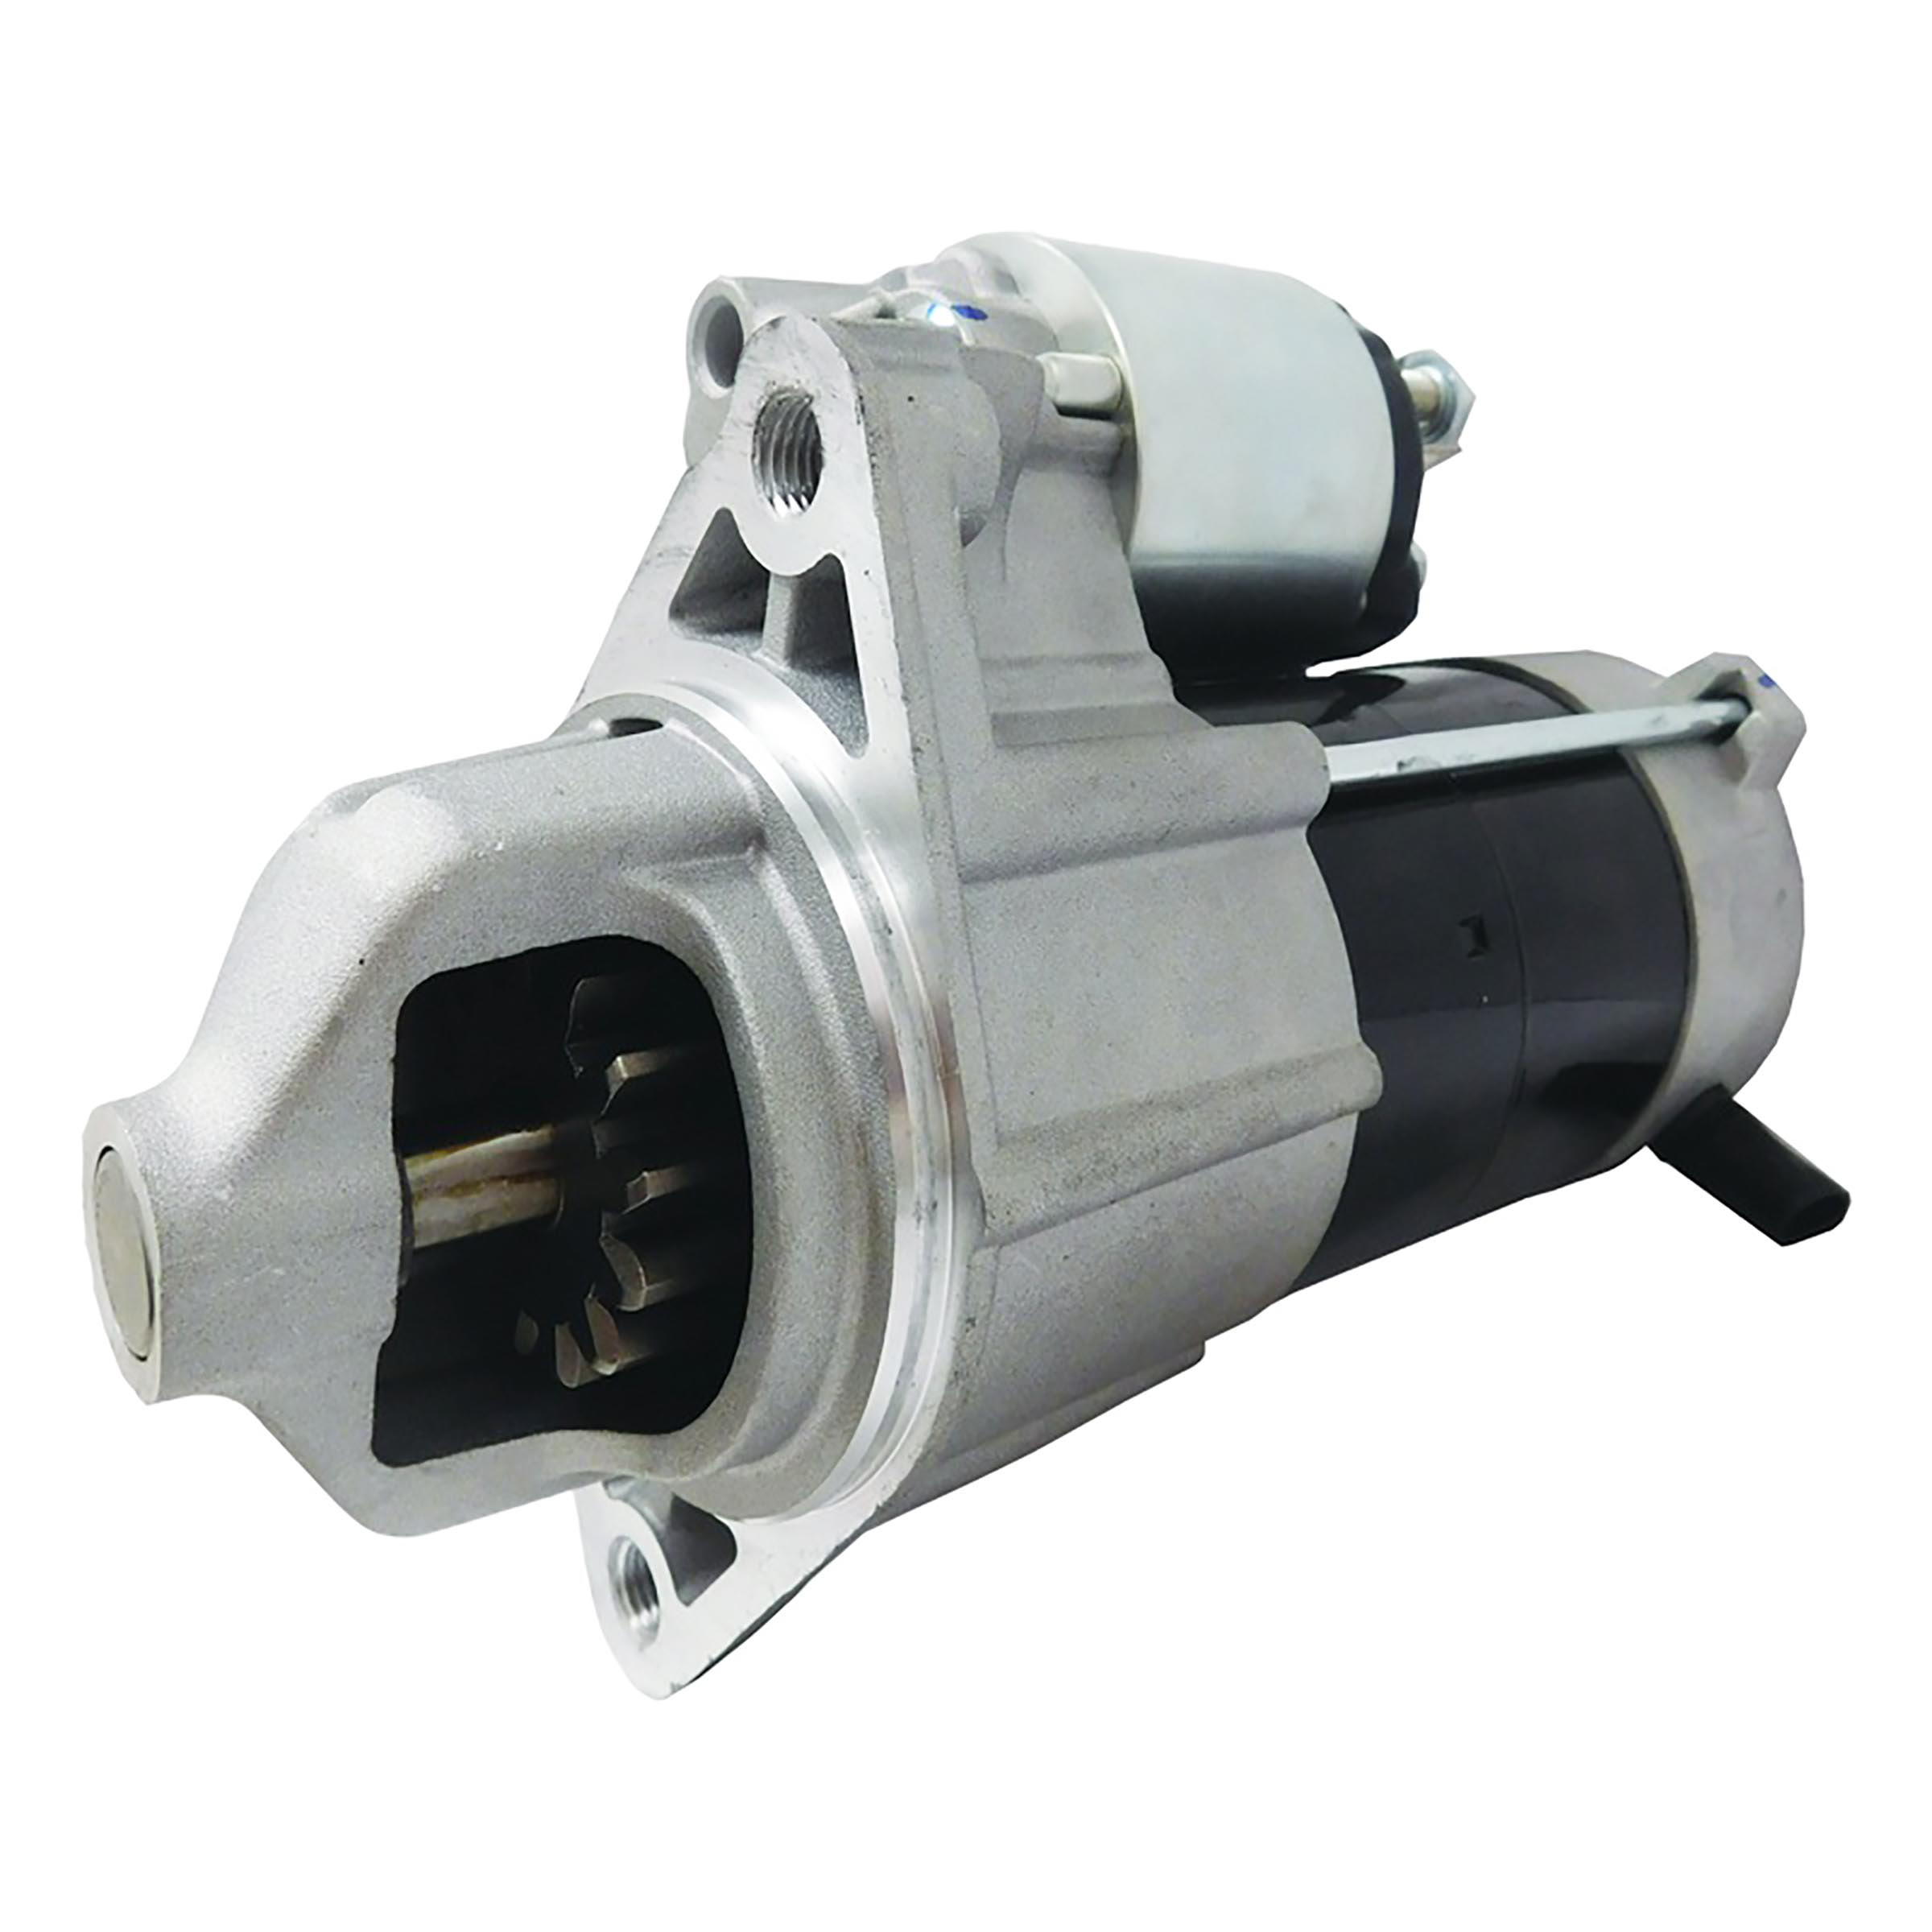 Details about Starter Replaces ISEKI 6281100014 62811000140 For Iseki 1 1L  Diesel Engine